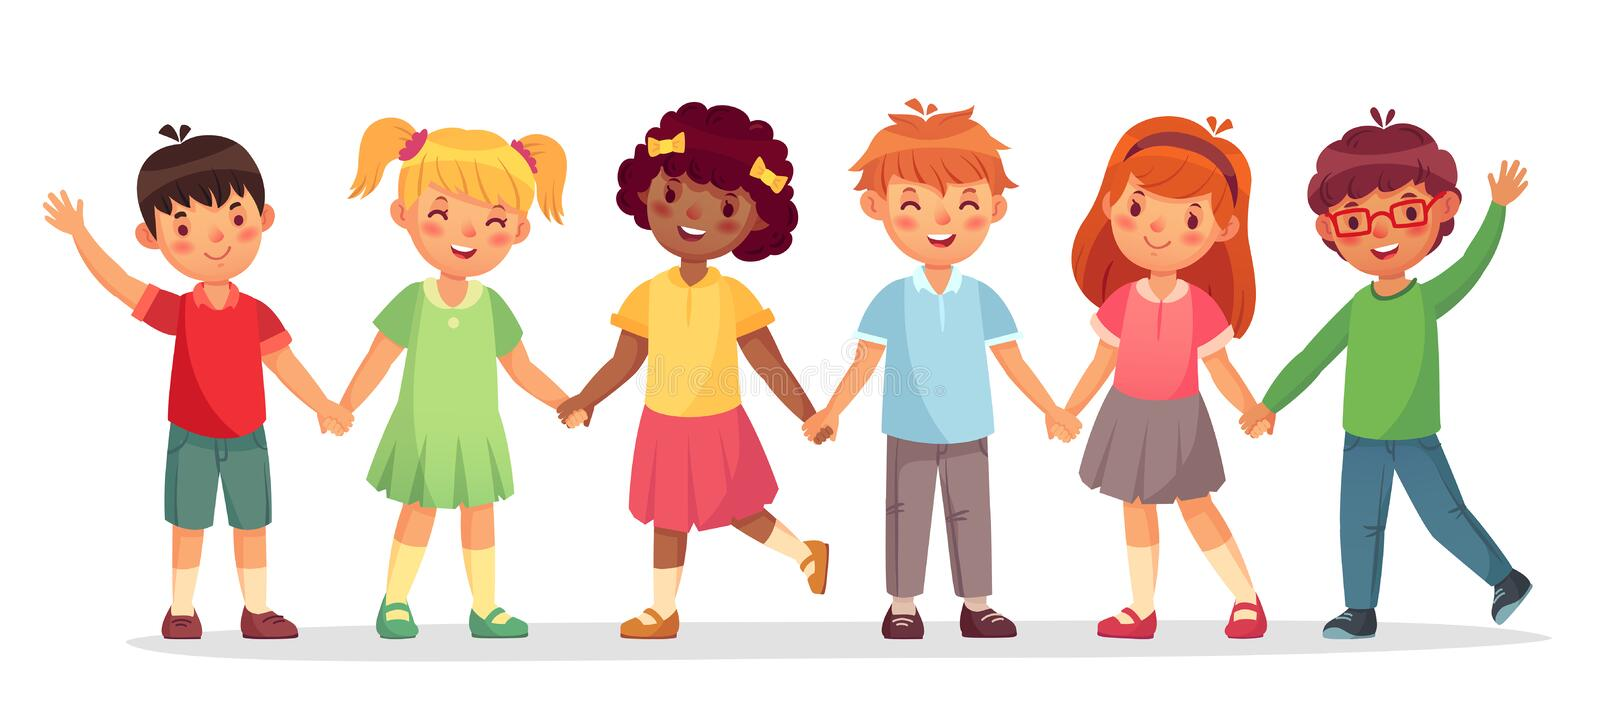 Happy kids team. Multinational childrens, school girls and boys stand together holding hands isolated vector stock illustration